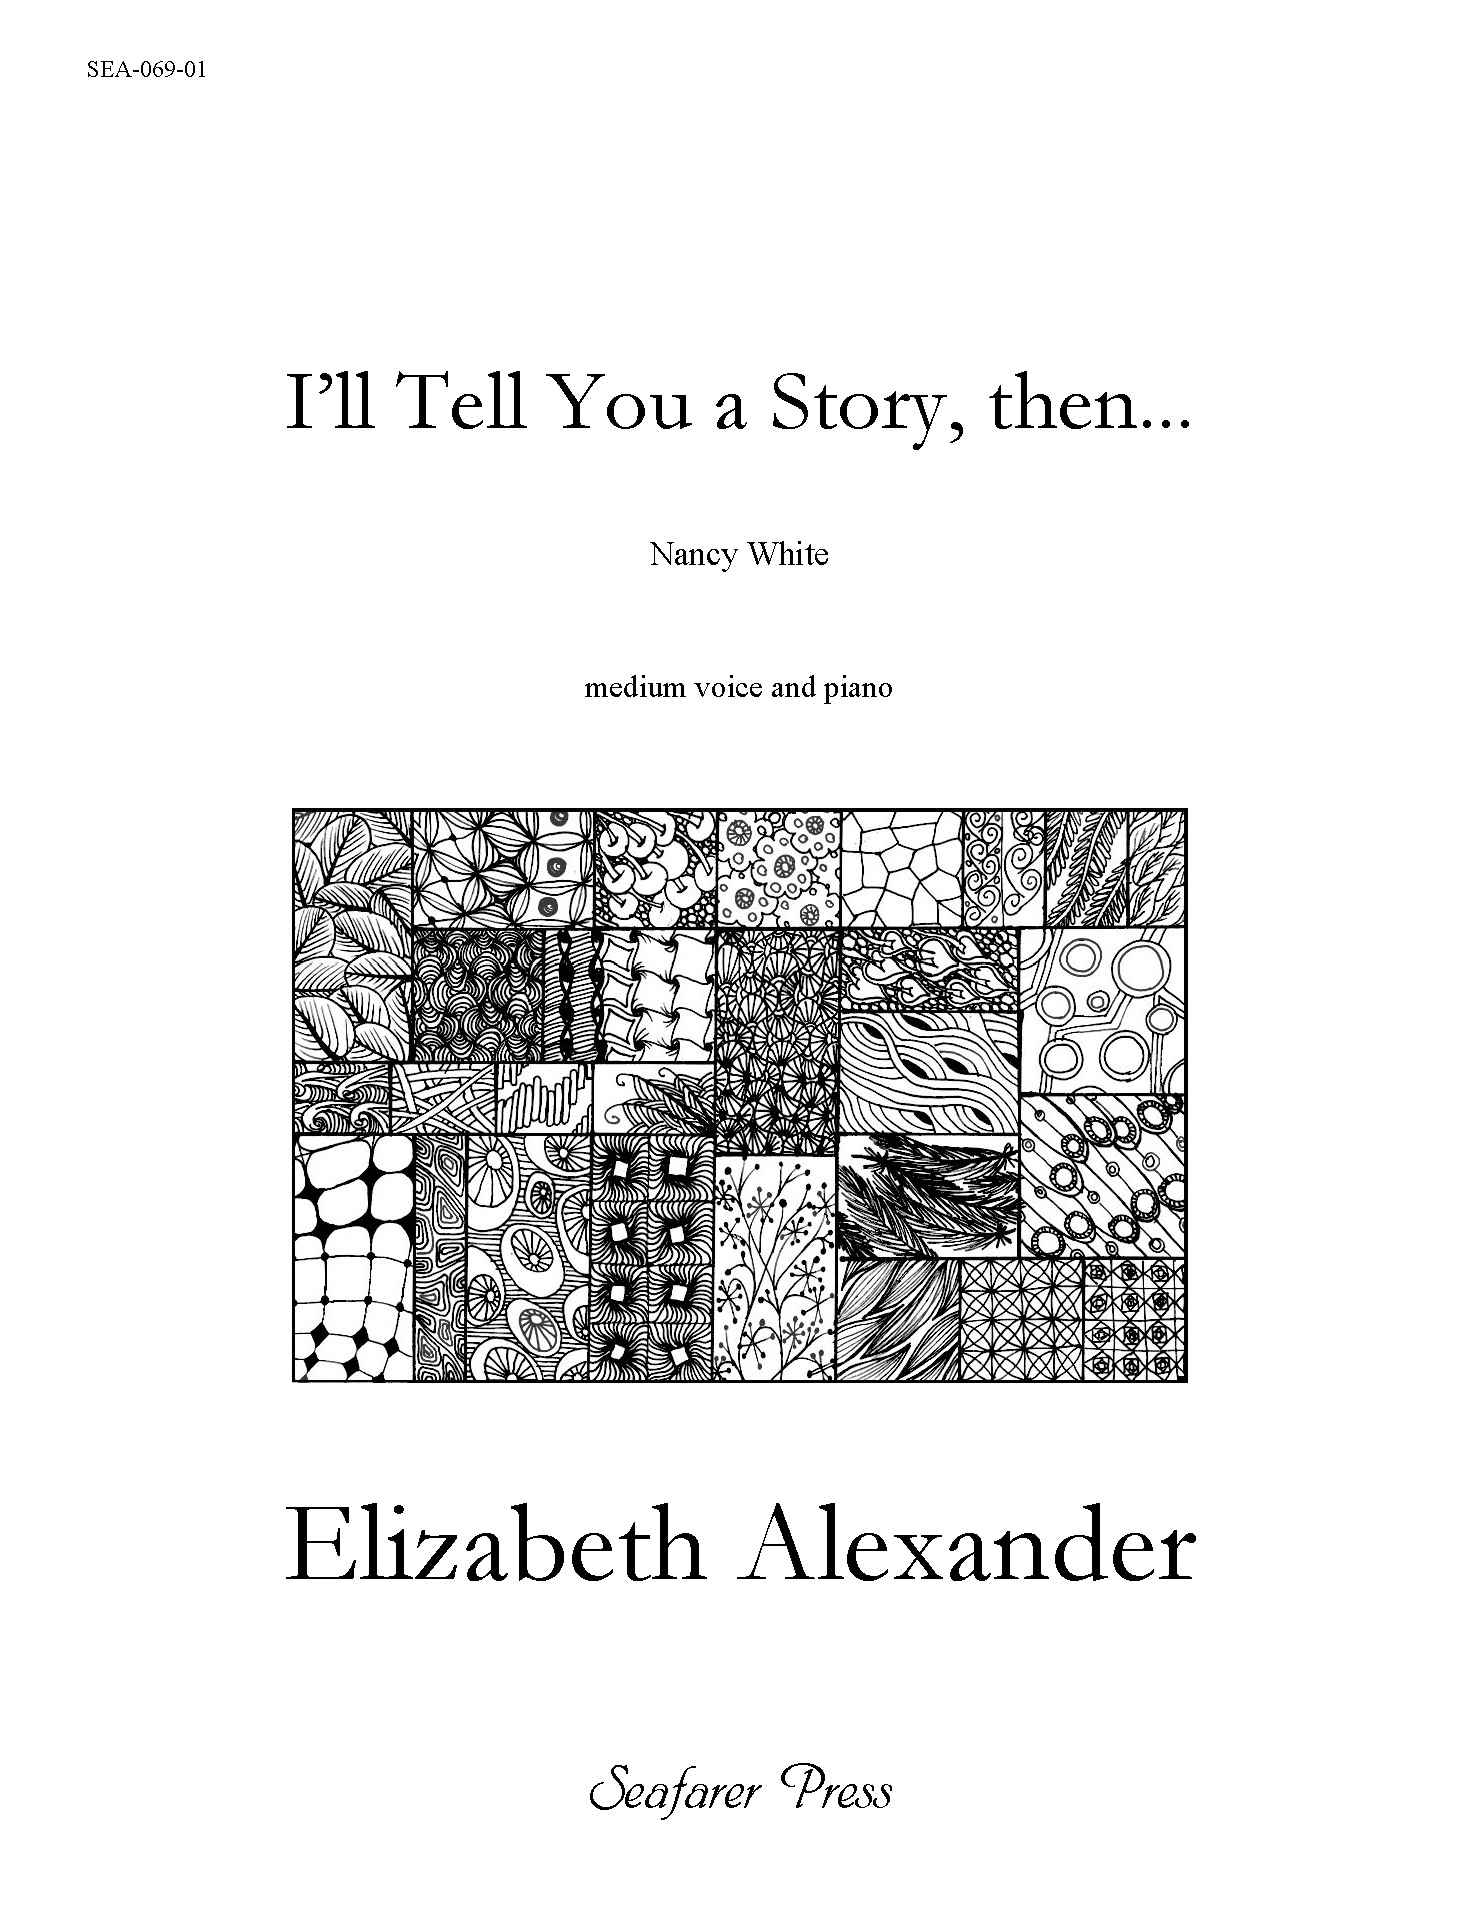 SEA-069-01 - I'll Tell You A Story, then…